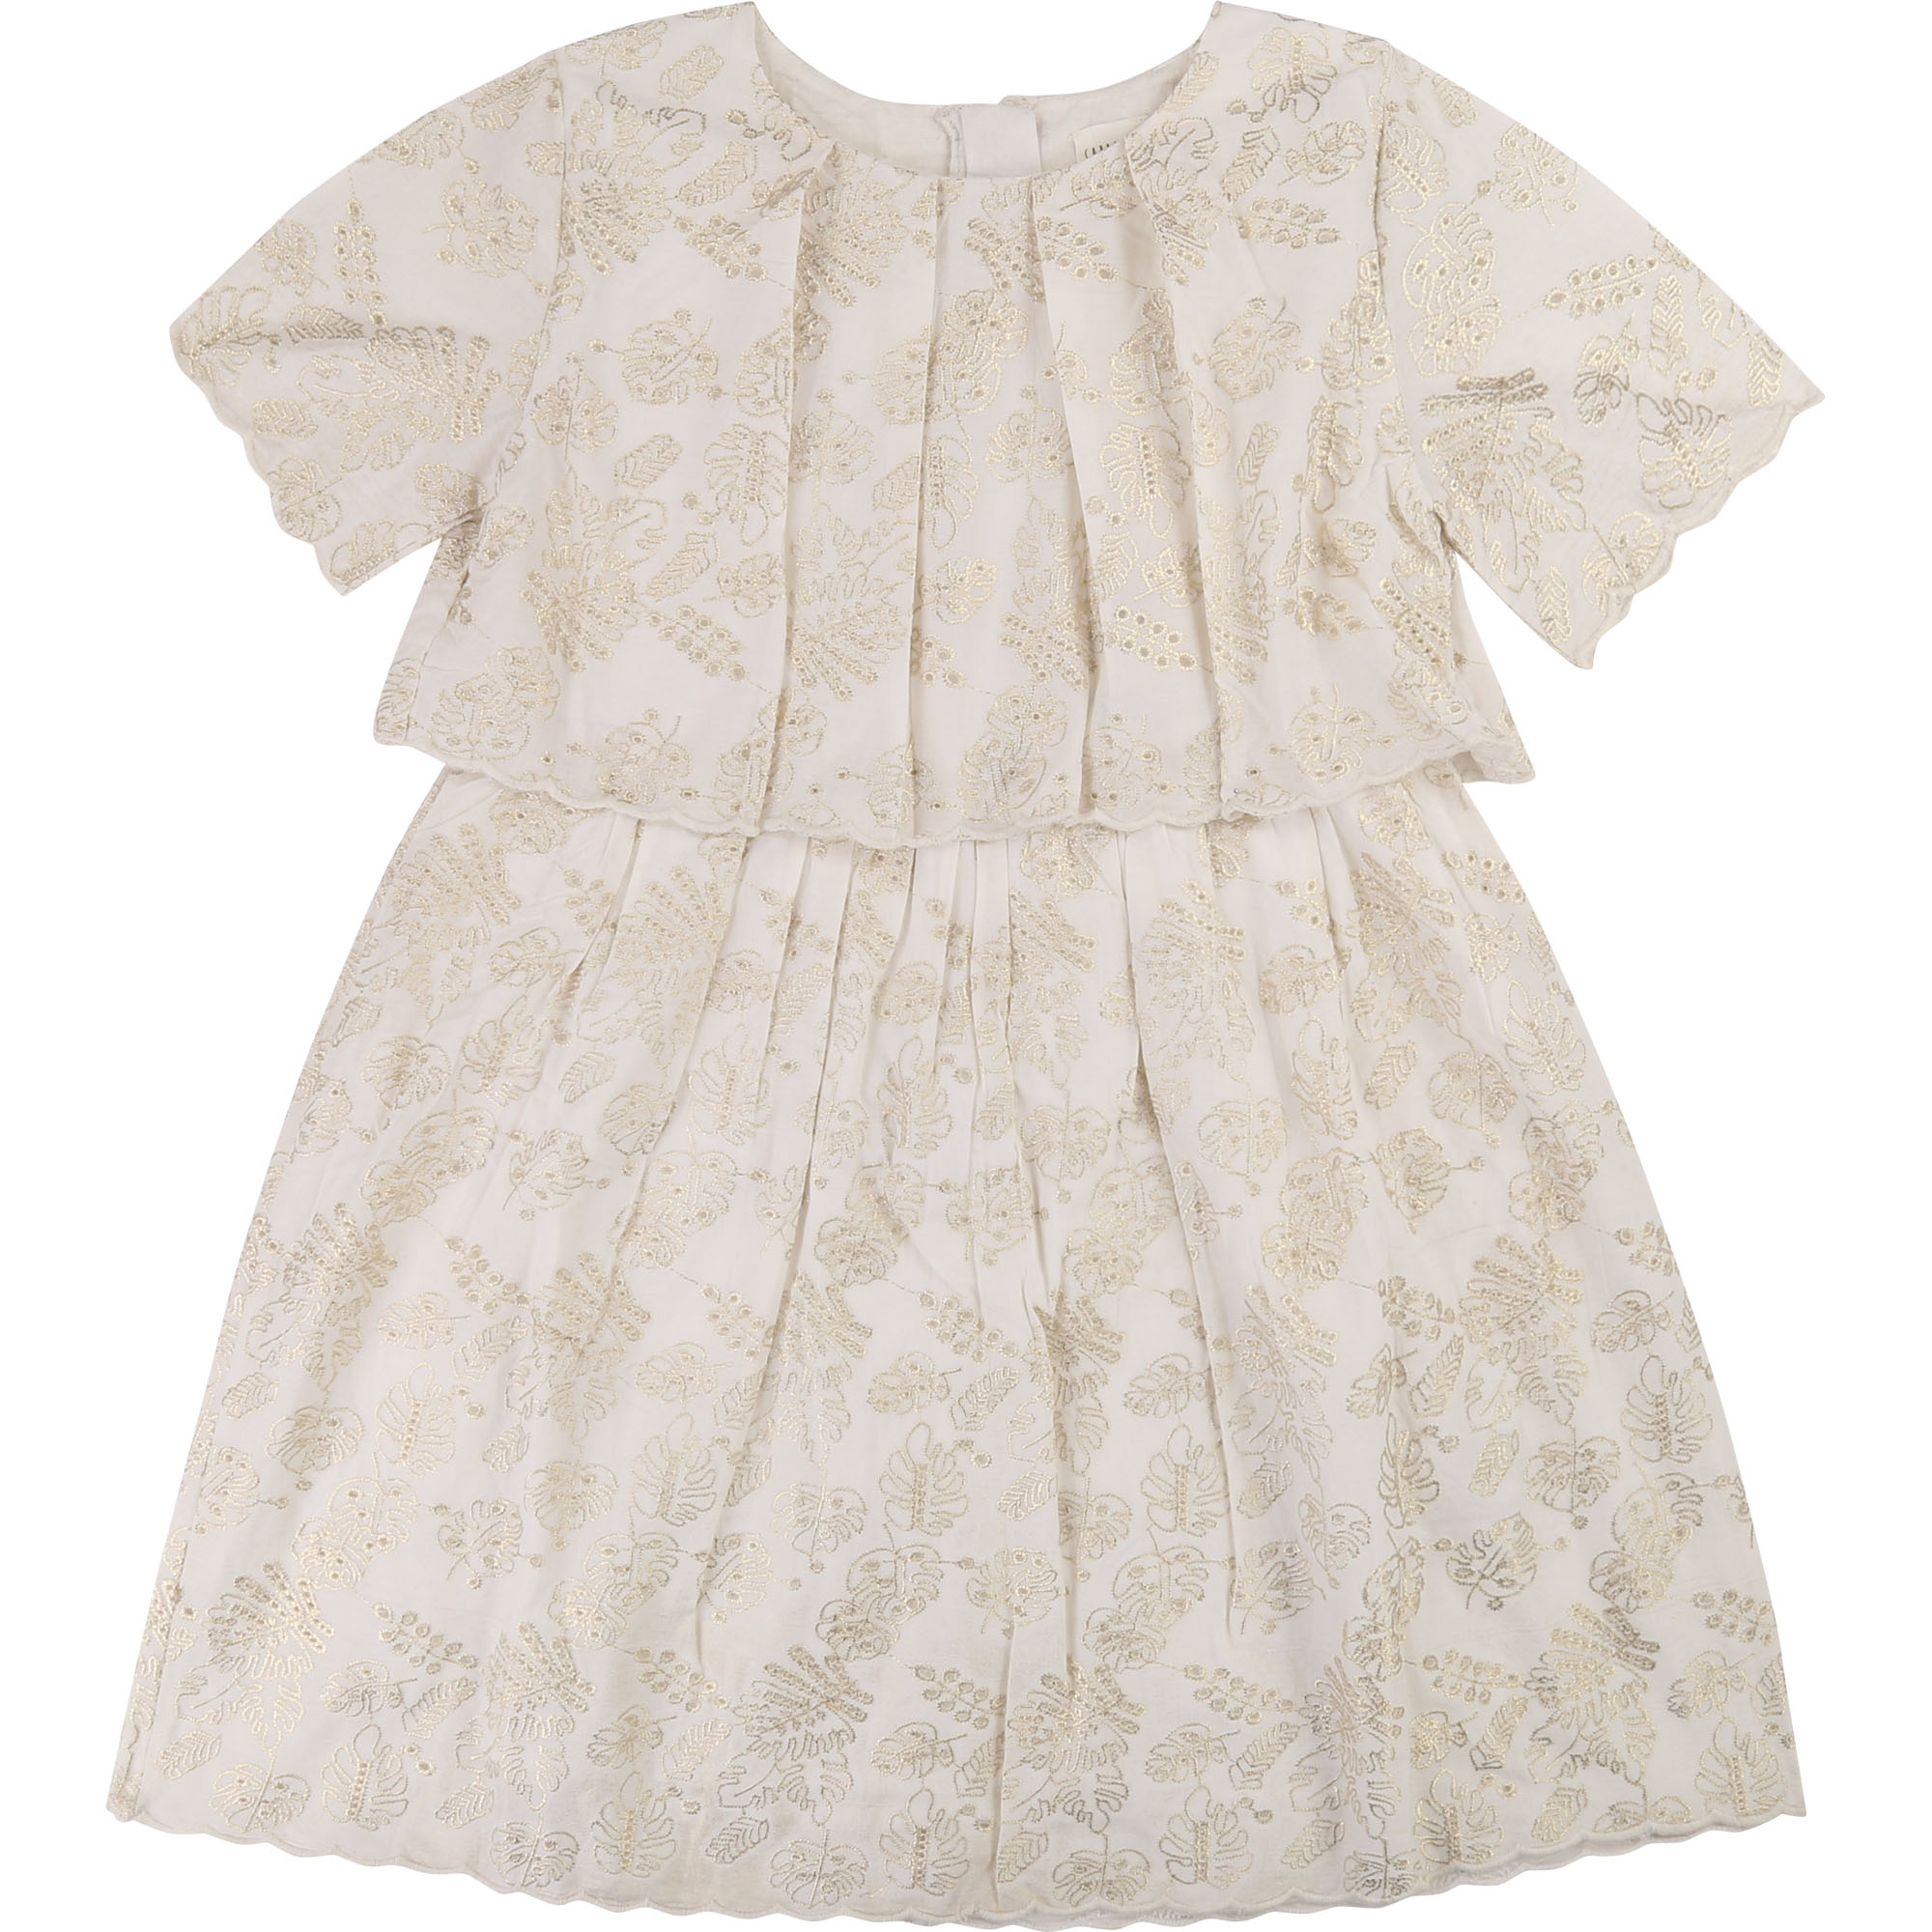 Robe en broderie anglaise CARREMENT BEAU pour FILLE